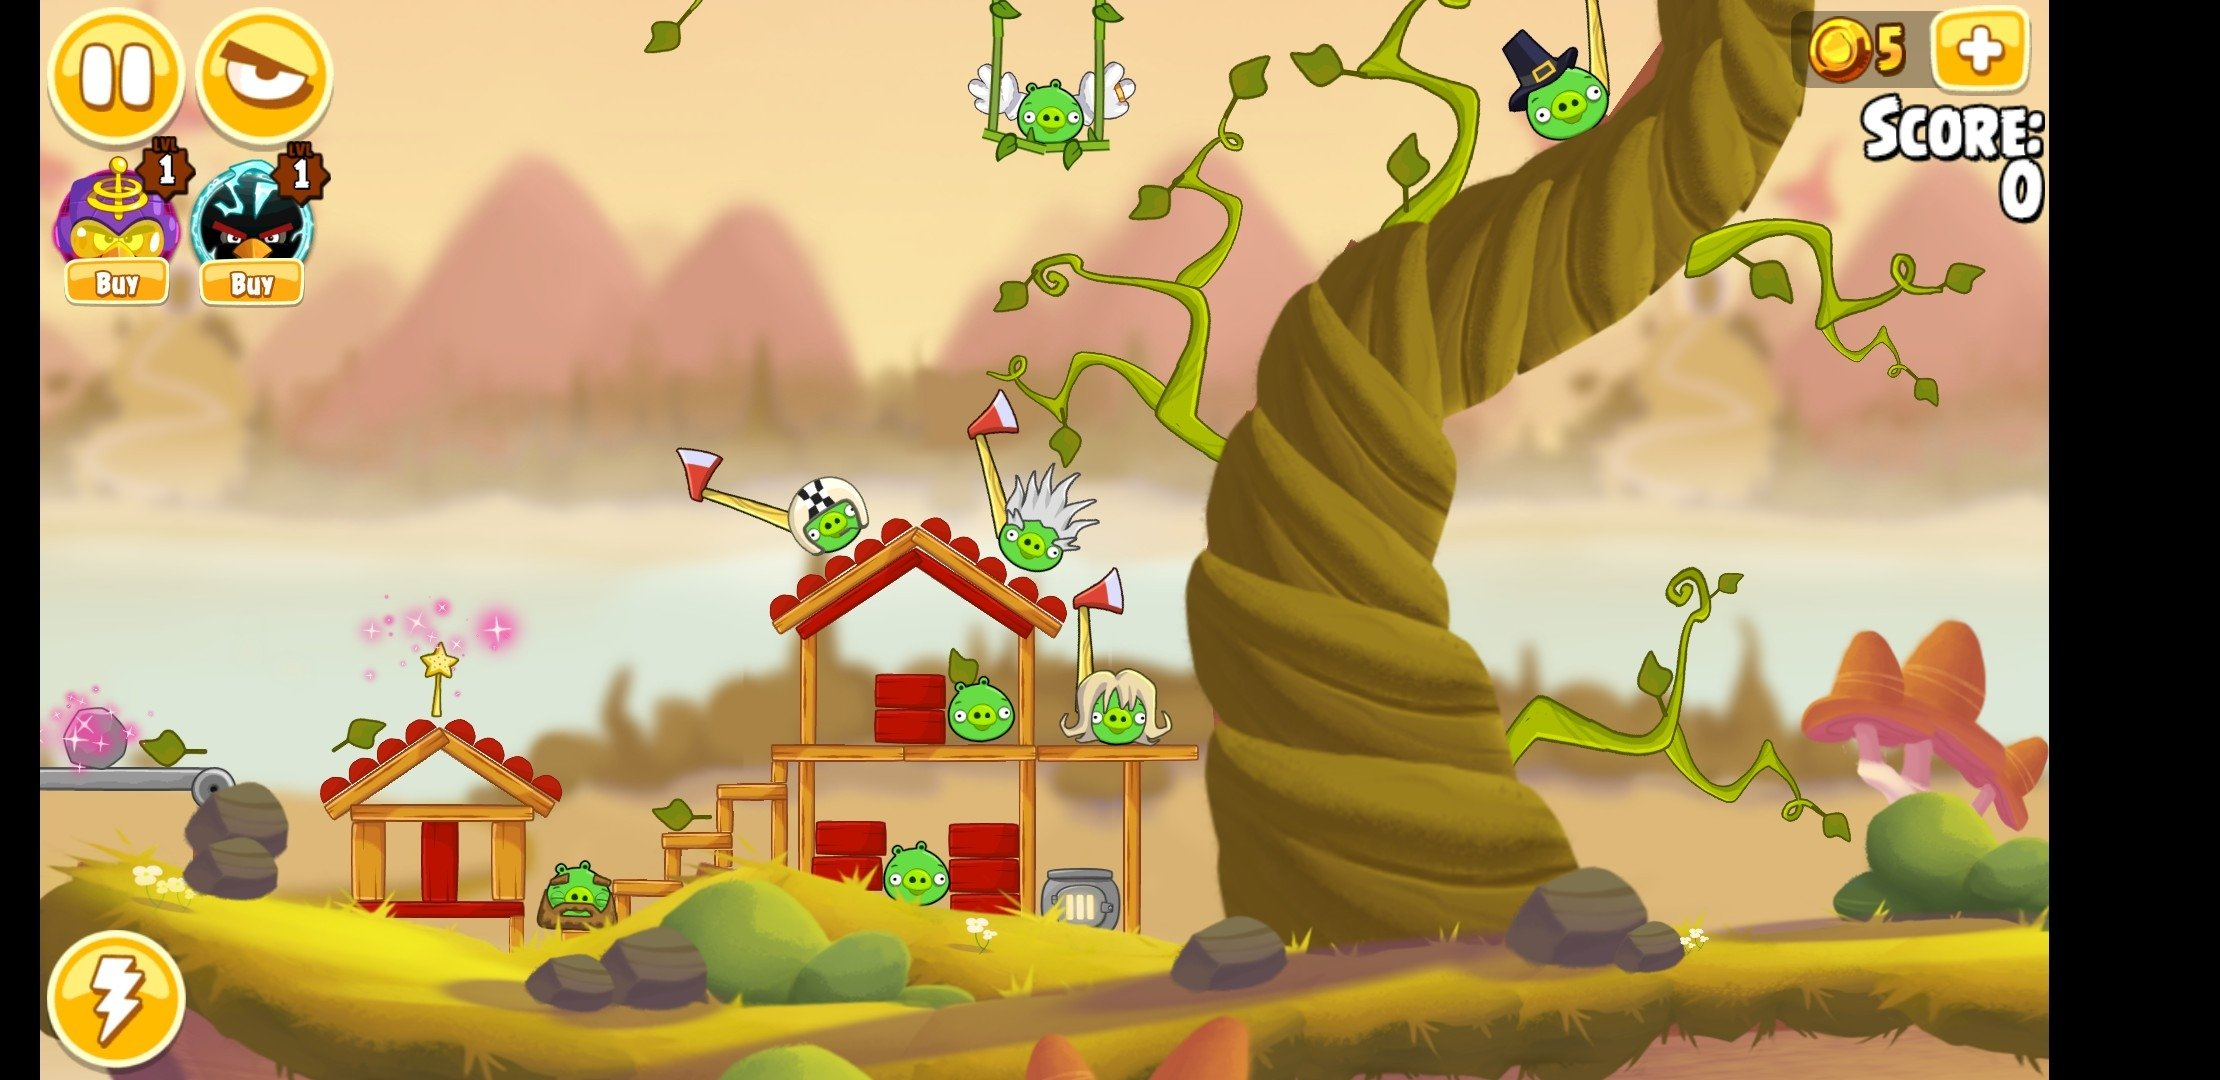 Angry Birds Seasons 6.6.2 - Download for Android APK Free